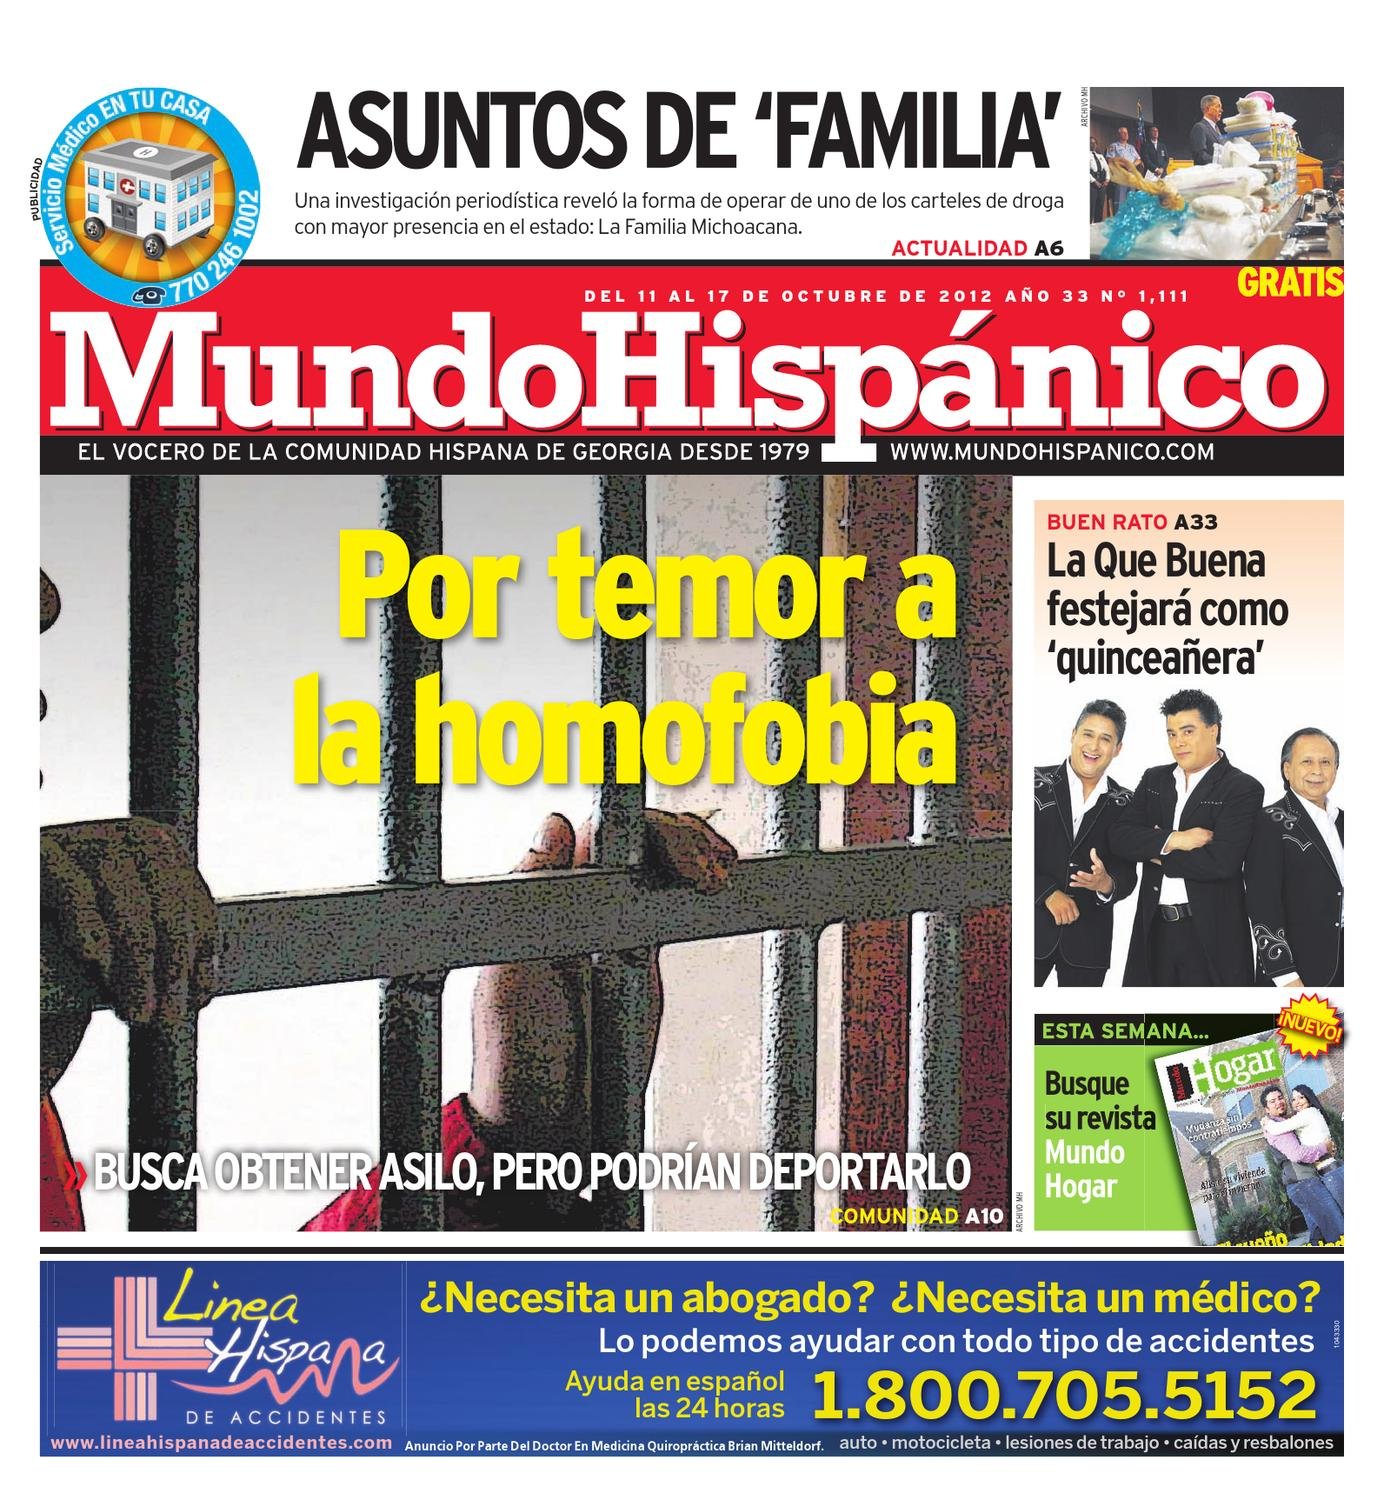 Mundo Hispanico 10-11-12 by MUNDO HISPANICO - issuu